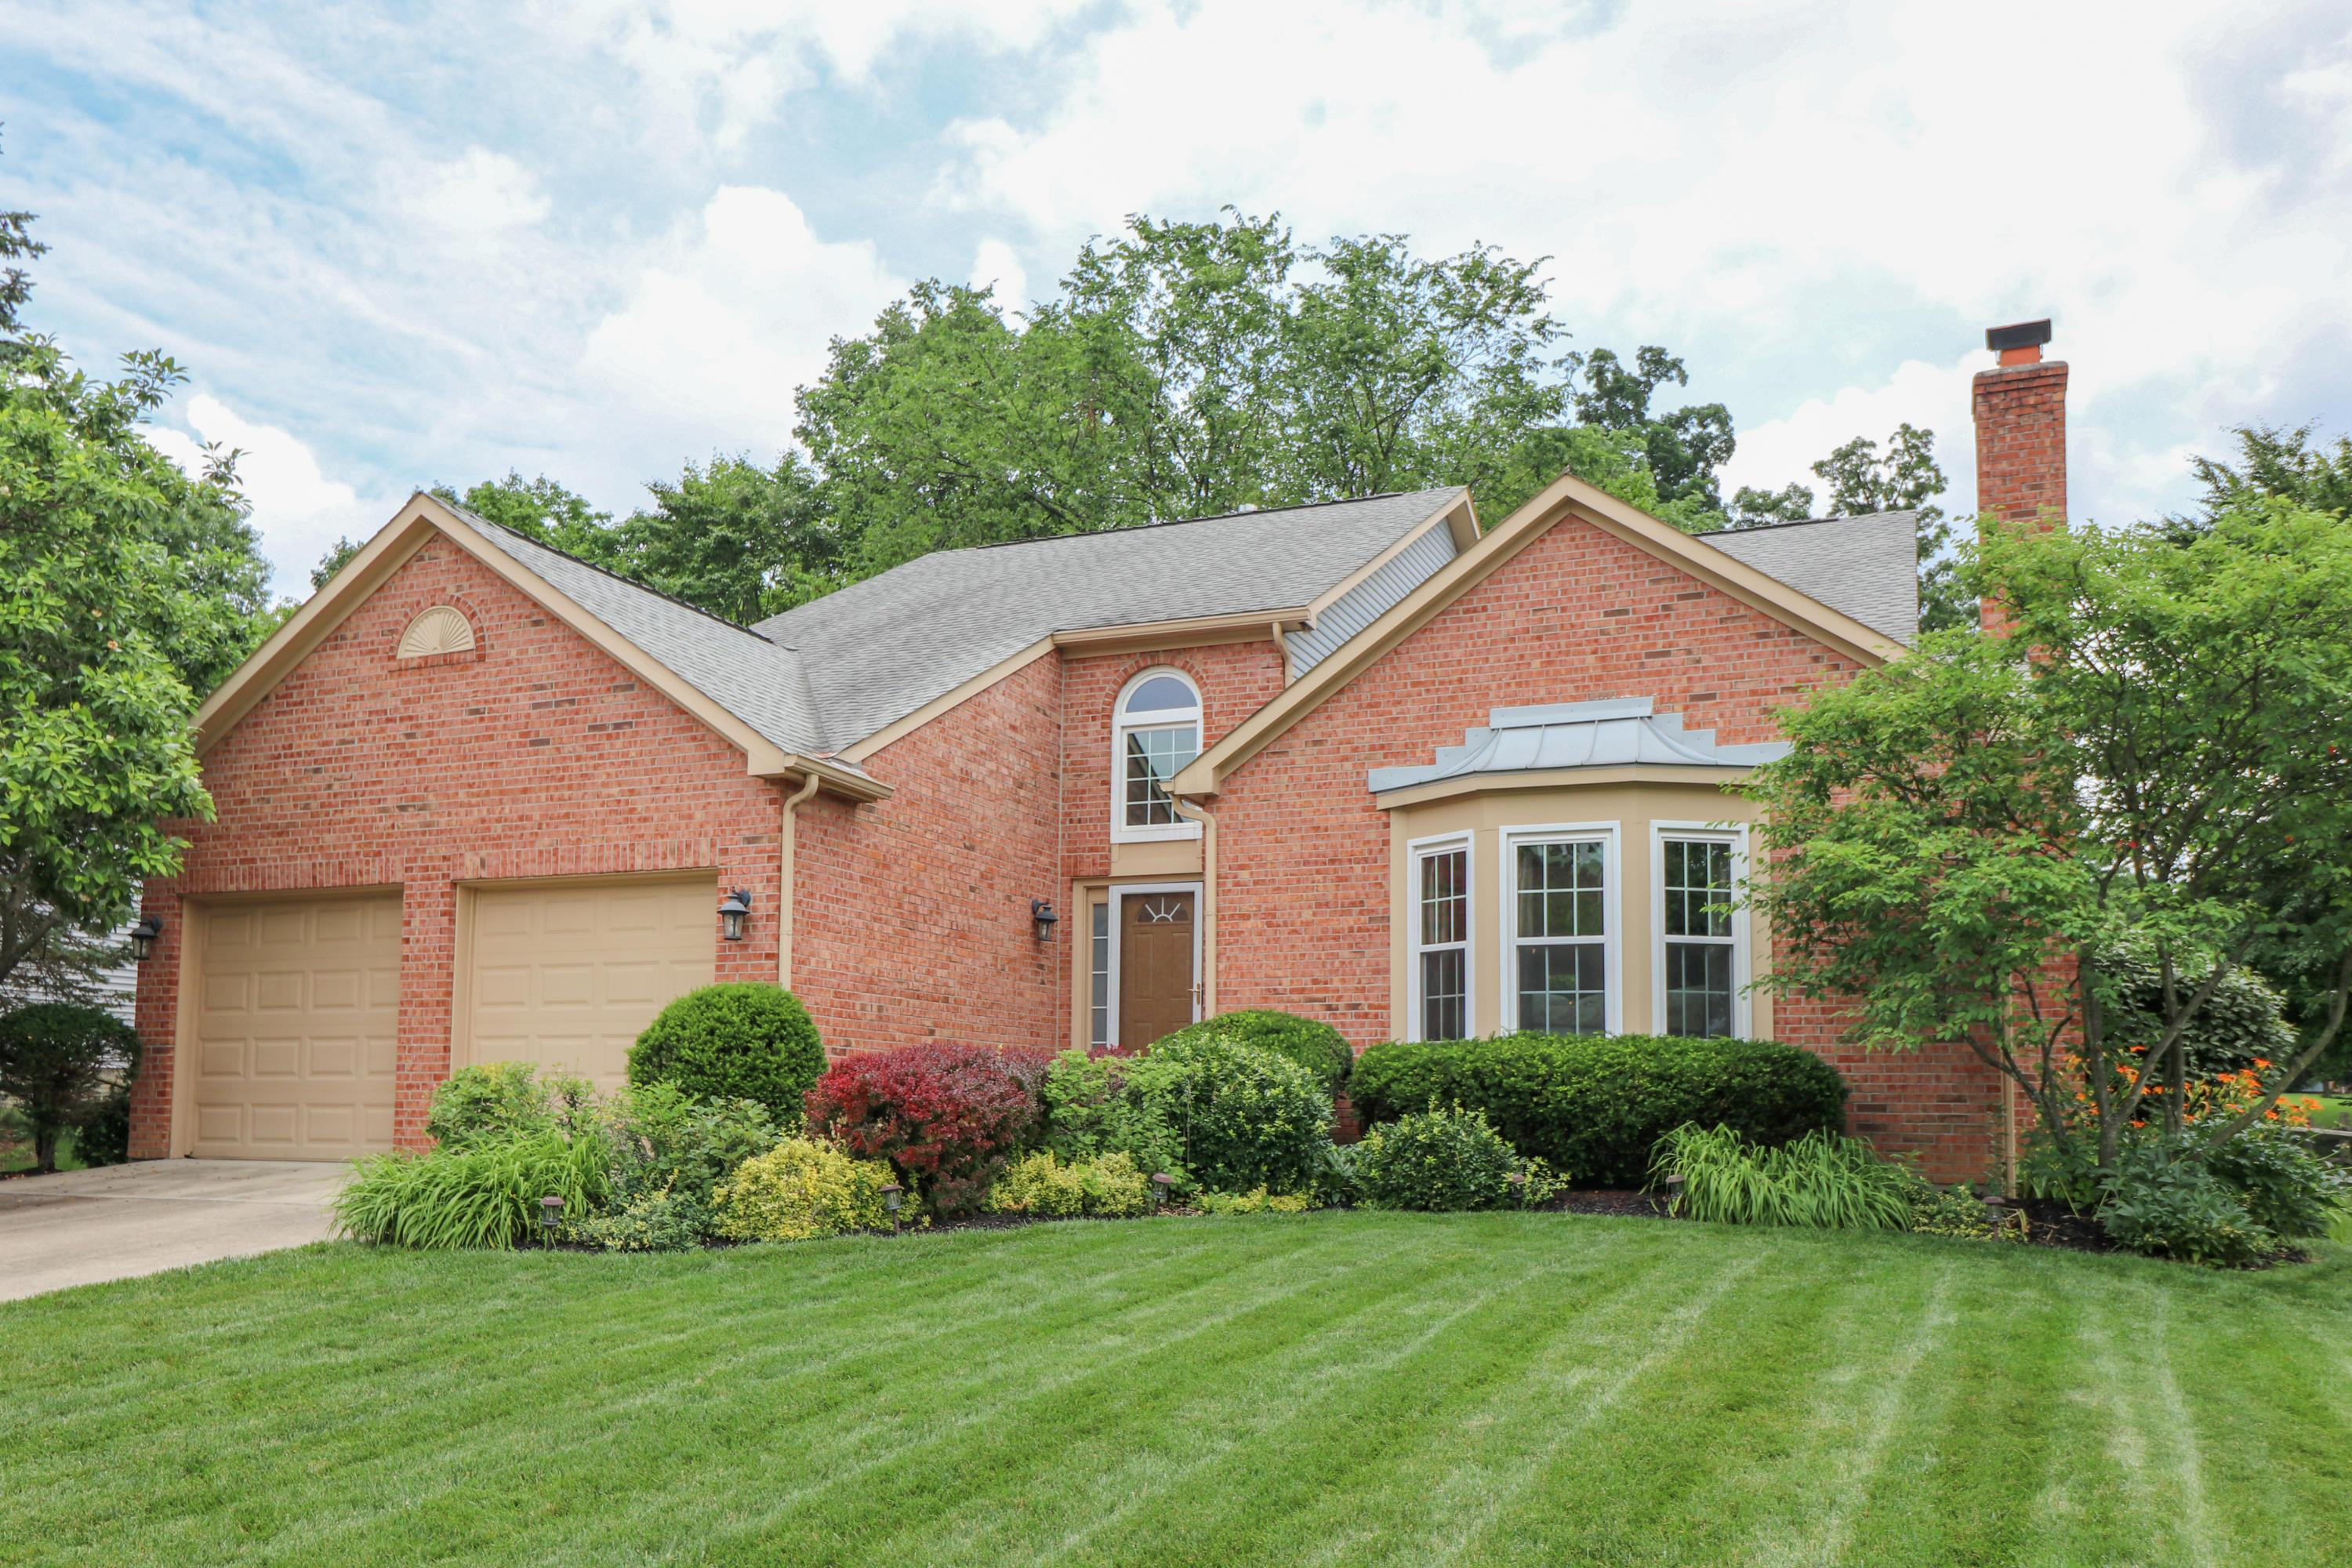 Photo of 442 Whitley Drive, Gahanna, OH 43230